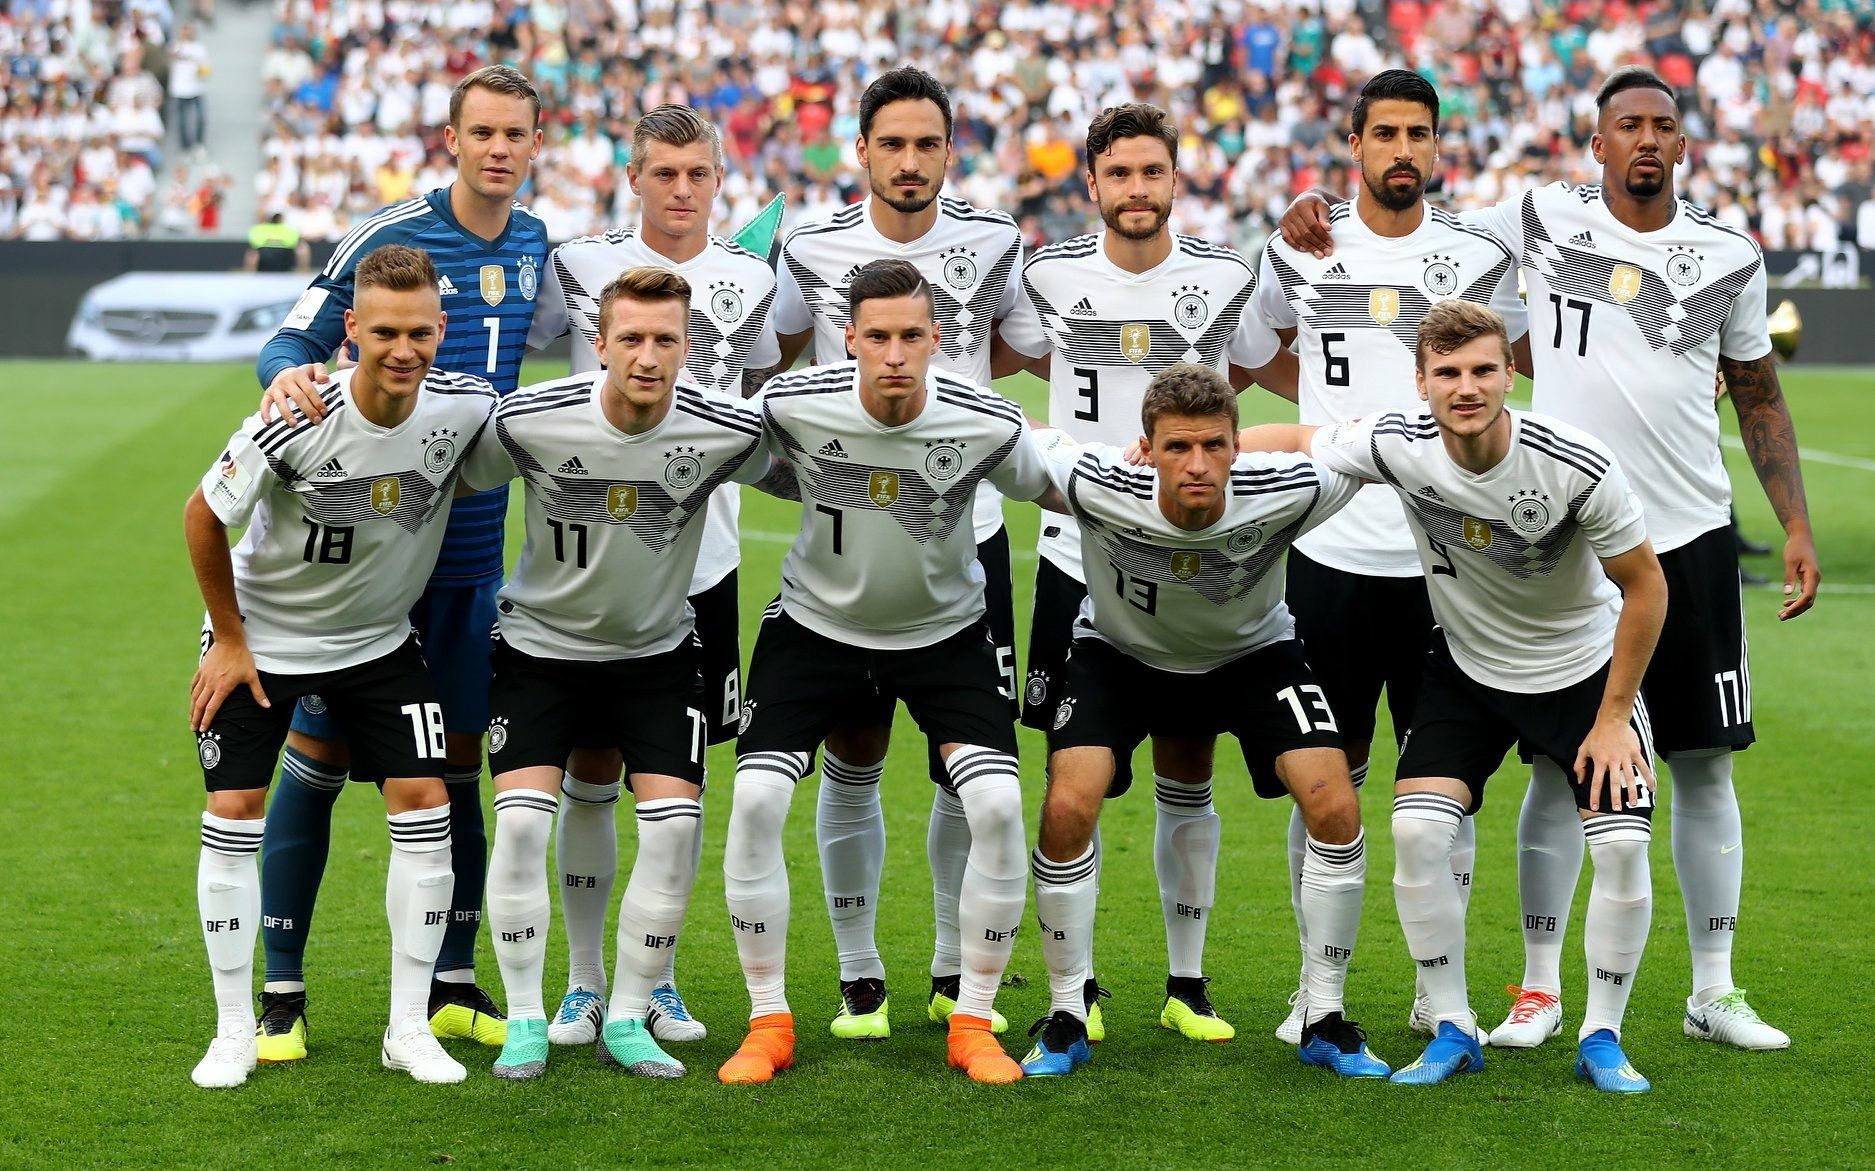 Germany National Team Ready For World Cup 2018 Germany Football Team Germany Football Germany Soccer Team